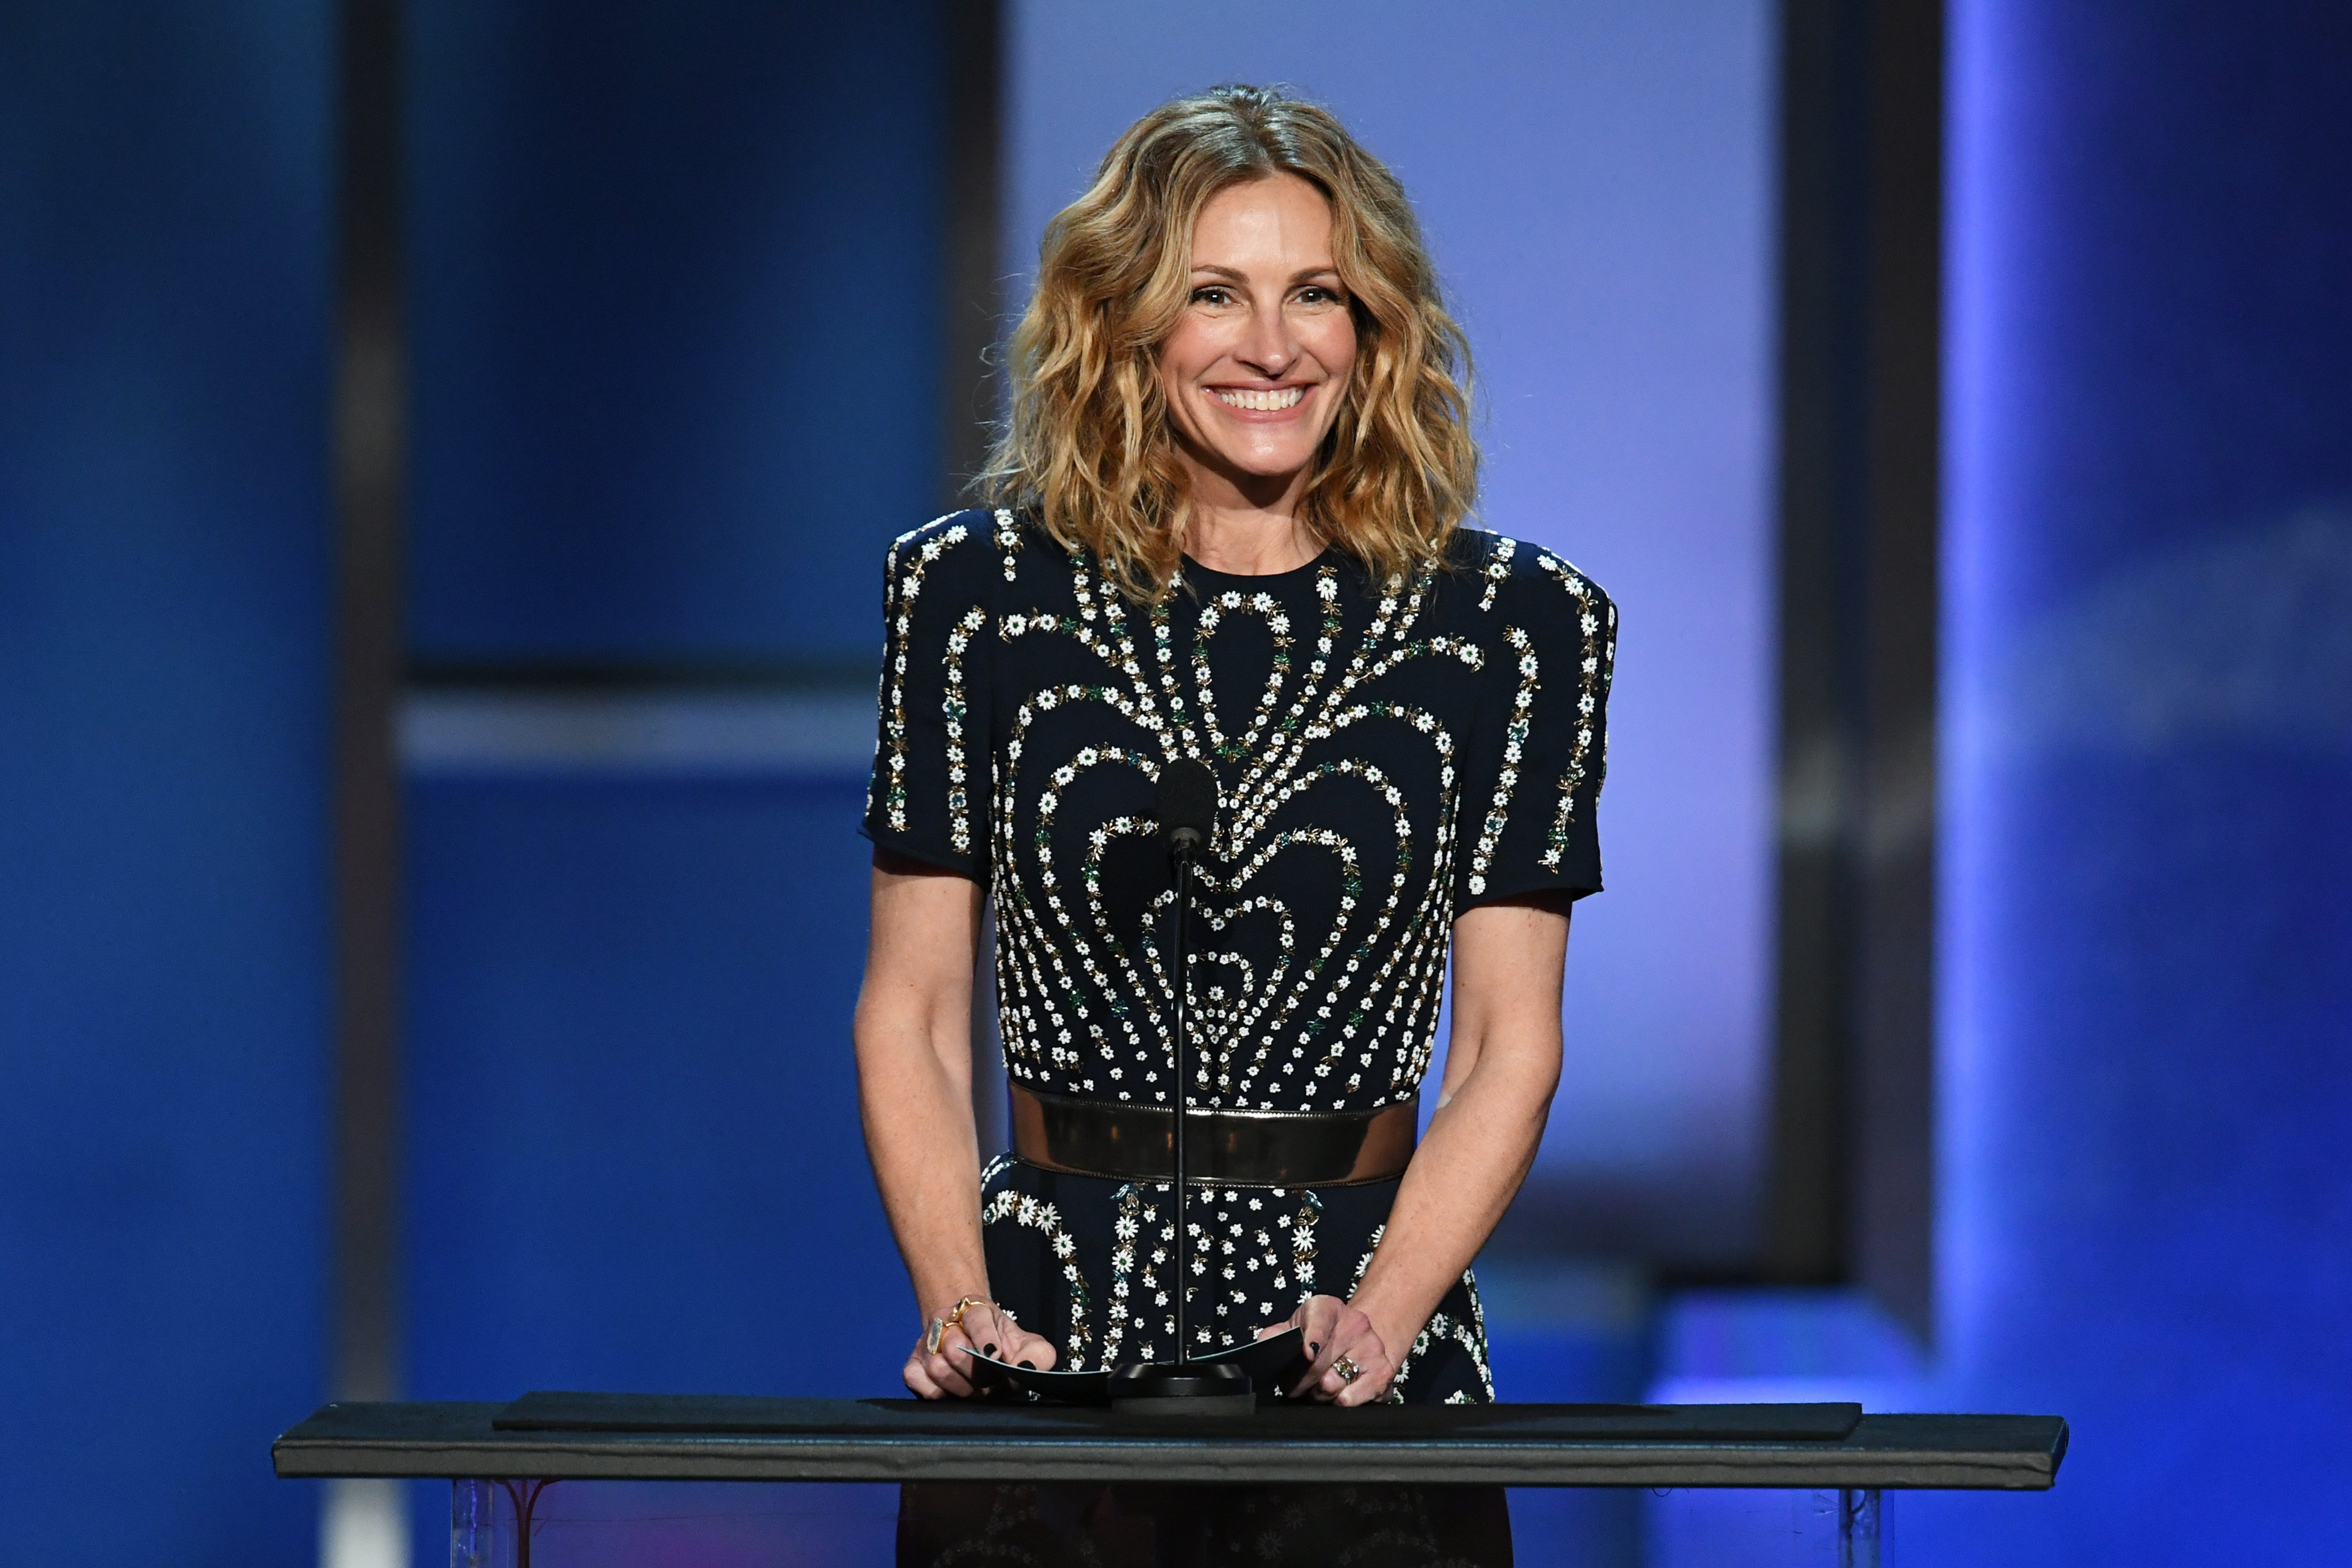 Julia Roberts speaks onstage during the 47th AFI Life Achievement Award honoring Denzel Washington at Dolby Theatre on June 06, 2019, in Hollywood, California.   Source: Getty Images.